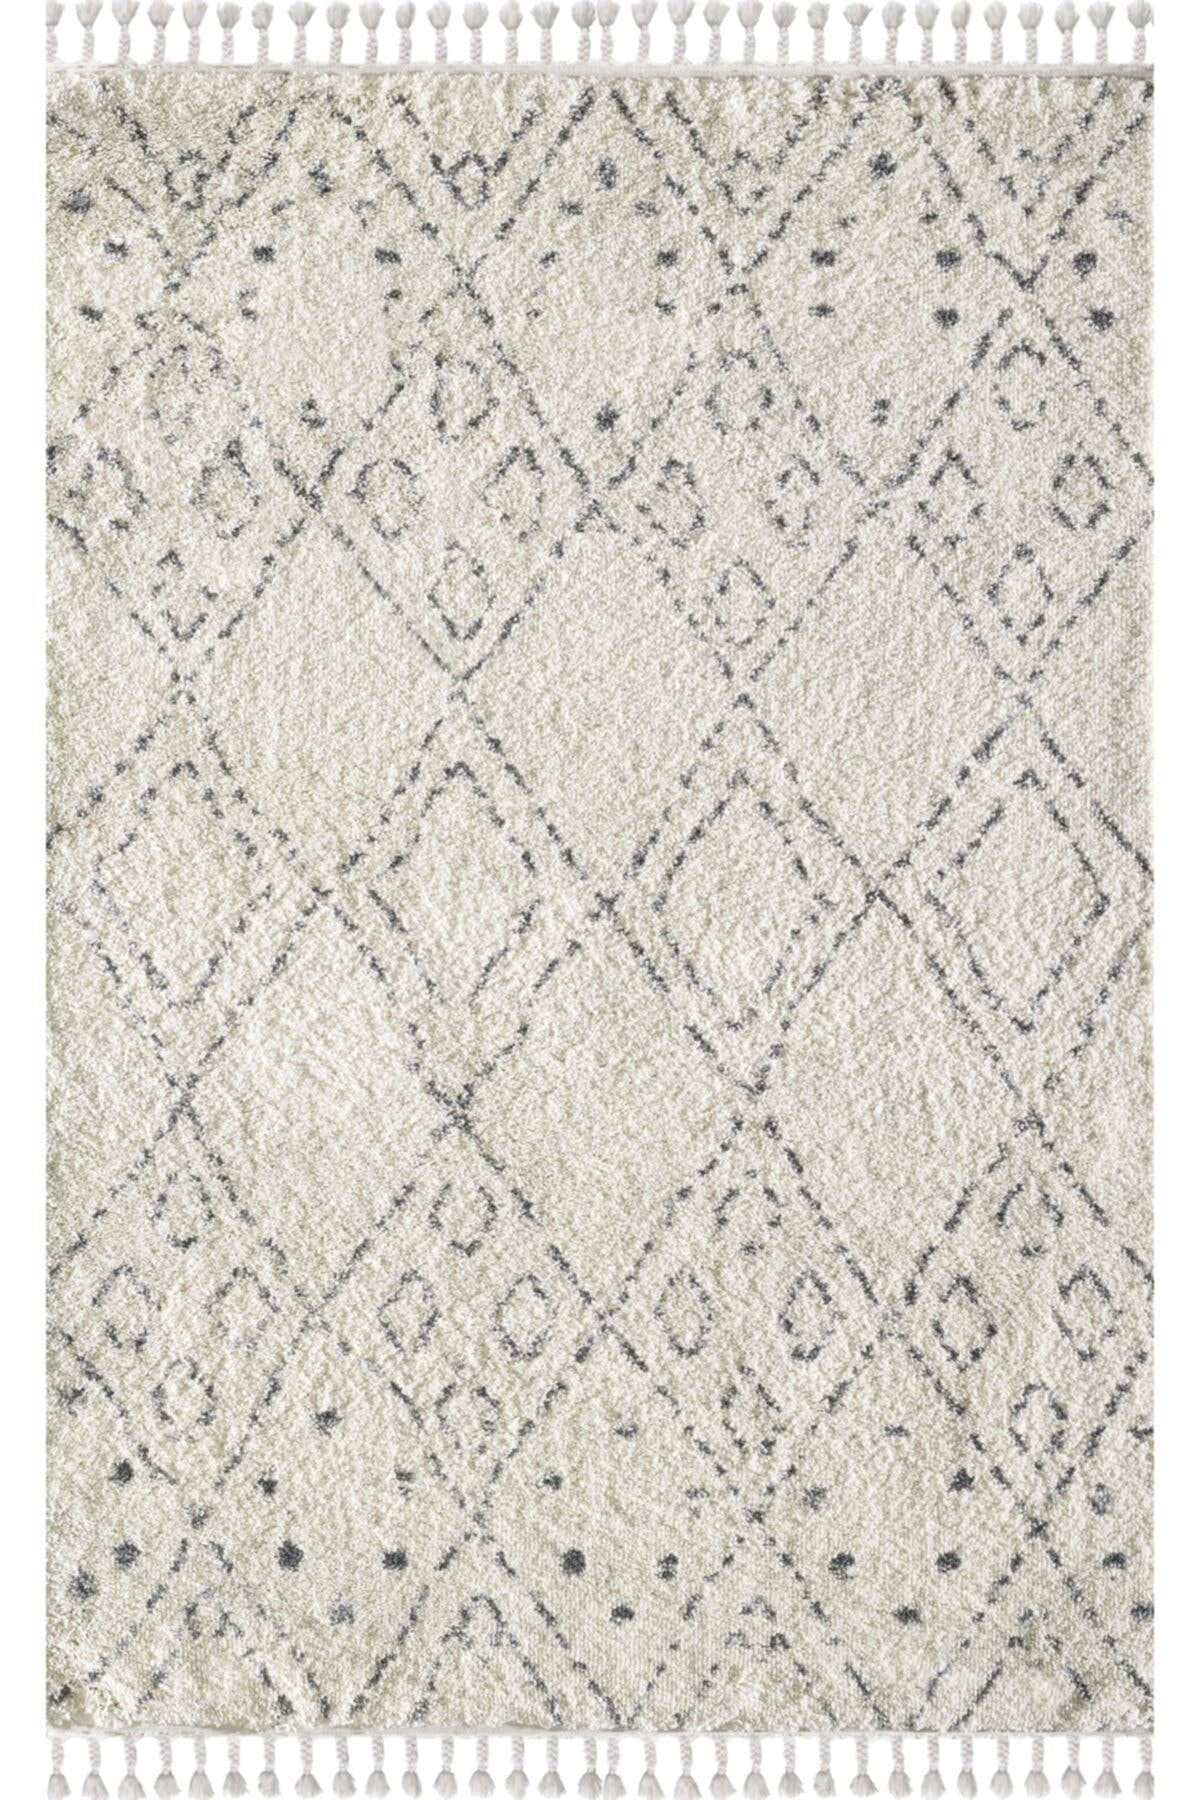 Viviana Home Chicago Serisi Kregri Cream/grey Chicago Collection 1